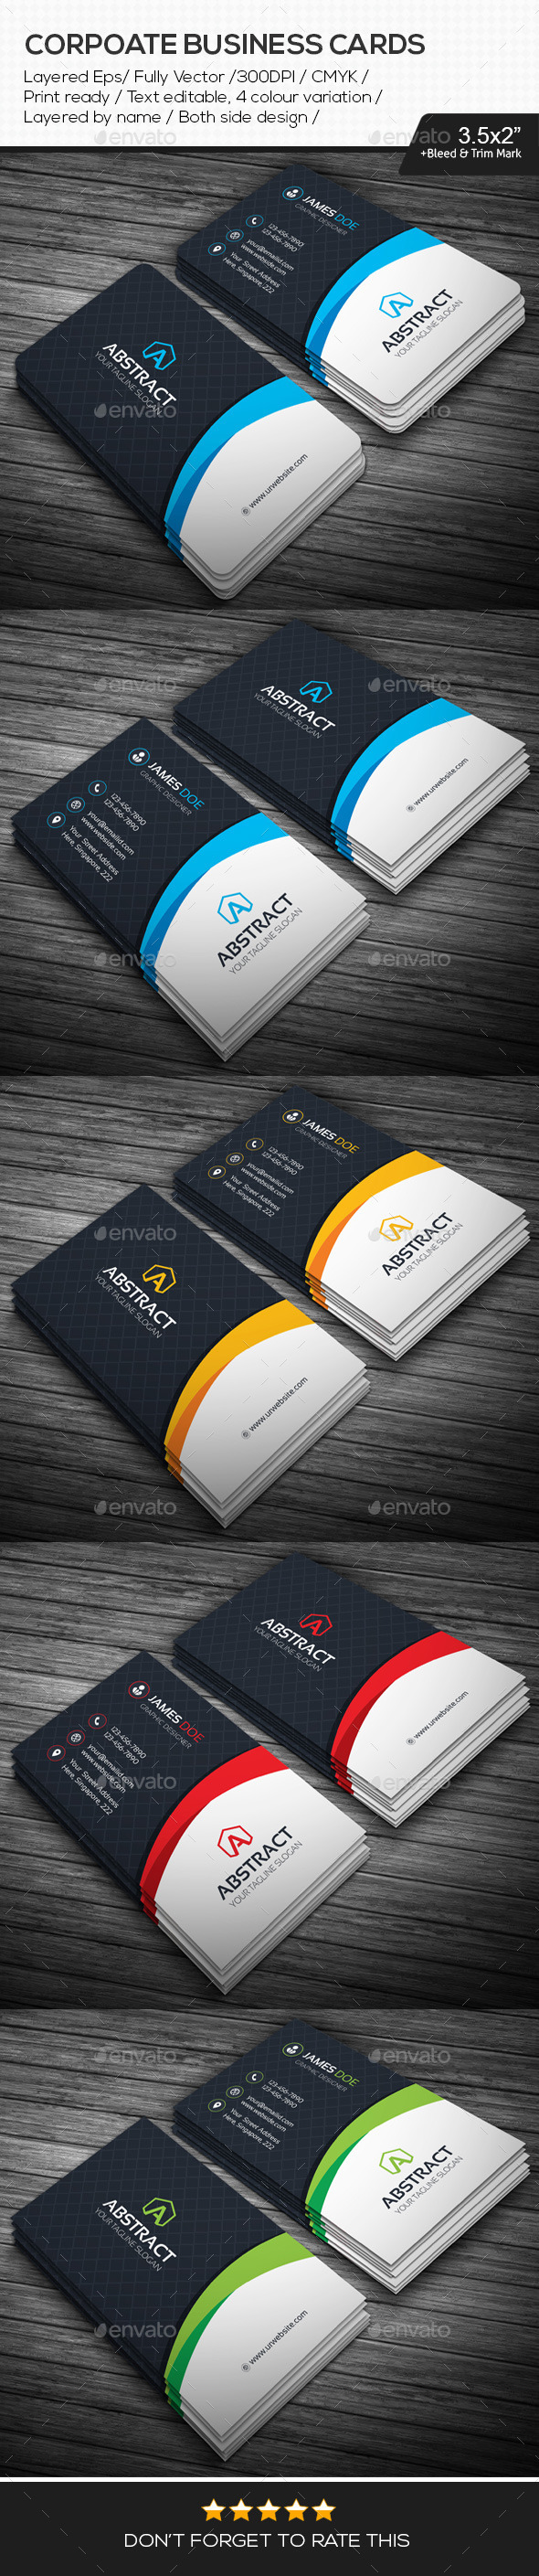 GraphicRiver Abstract Corporate Business Cards 11005248